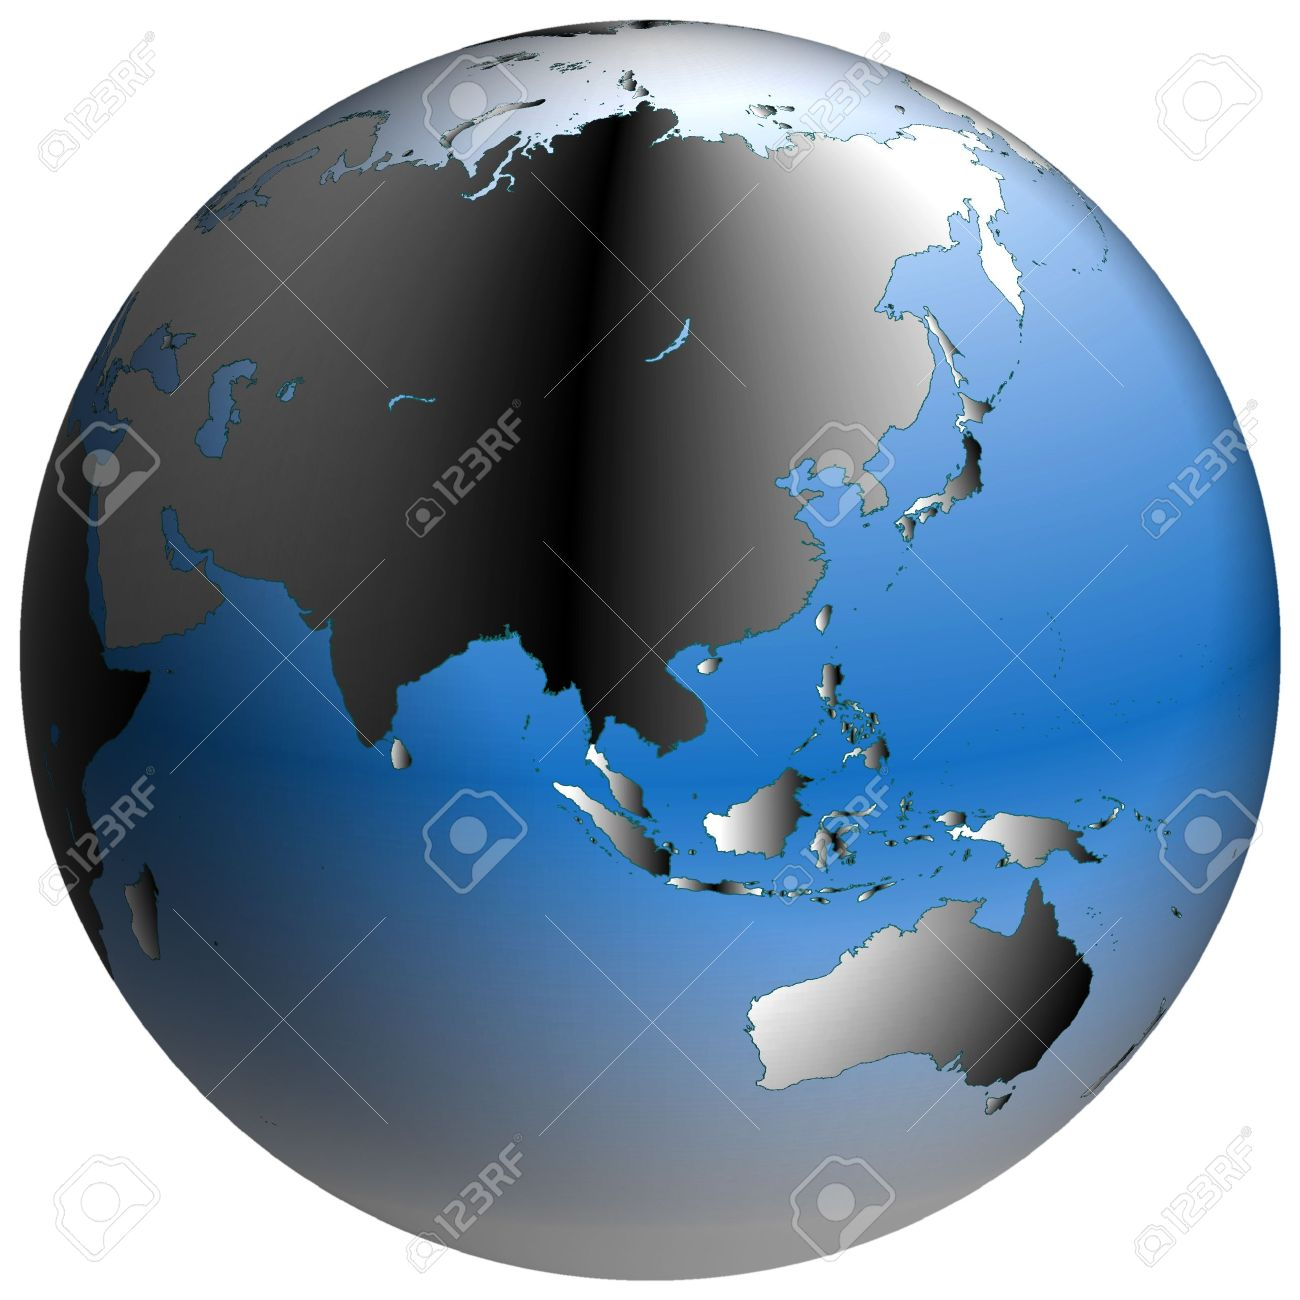 Spherical World Map.Highly Detailed World Map In Spherical Co Ordinates With Asia